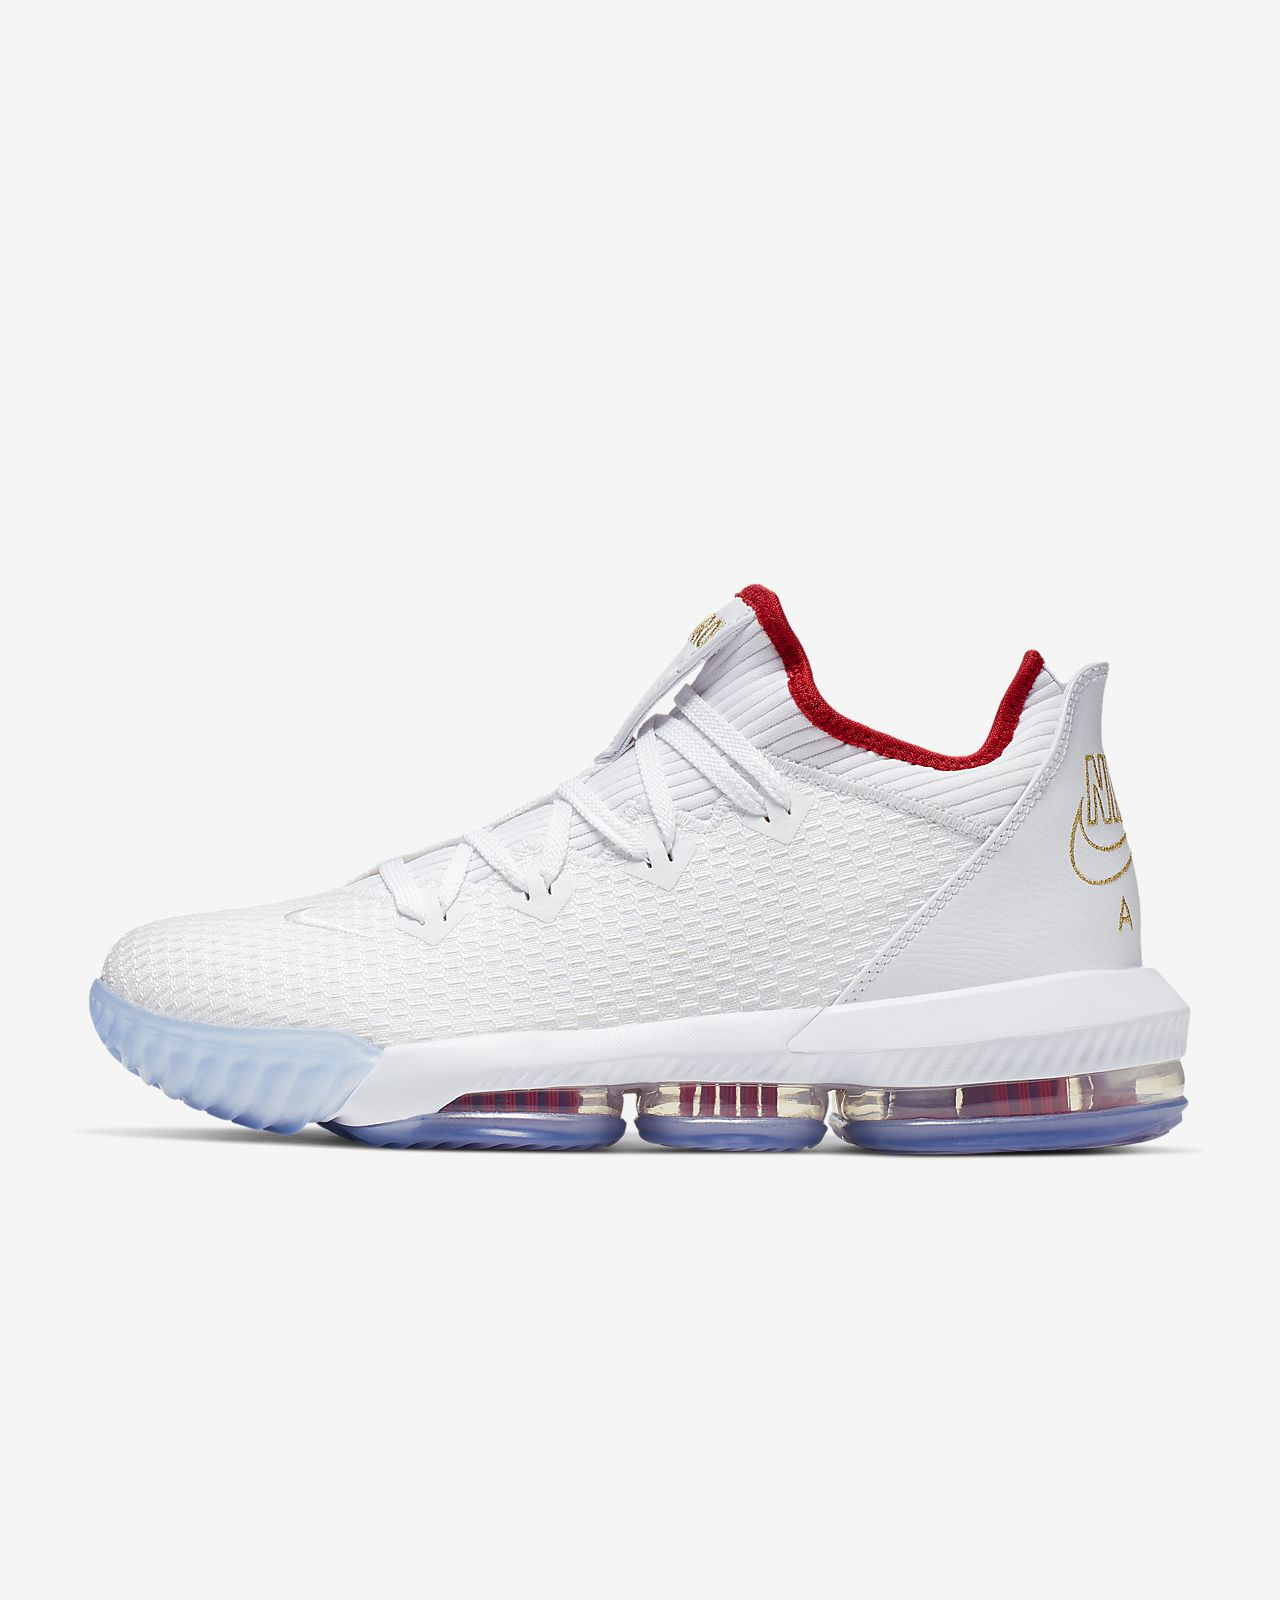 LeBron 16 Low Basketballschuh